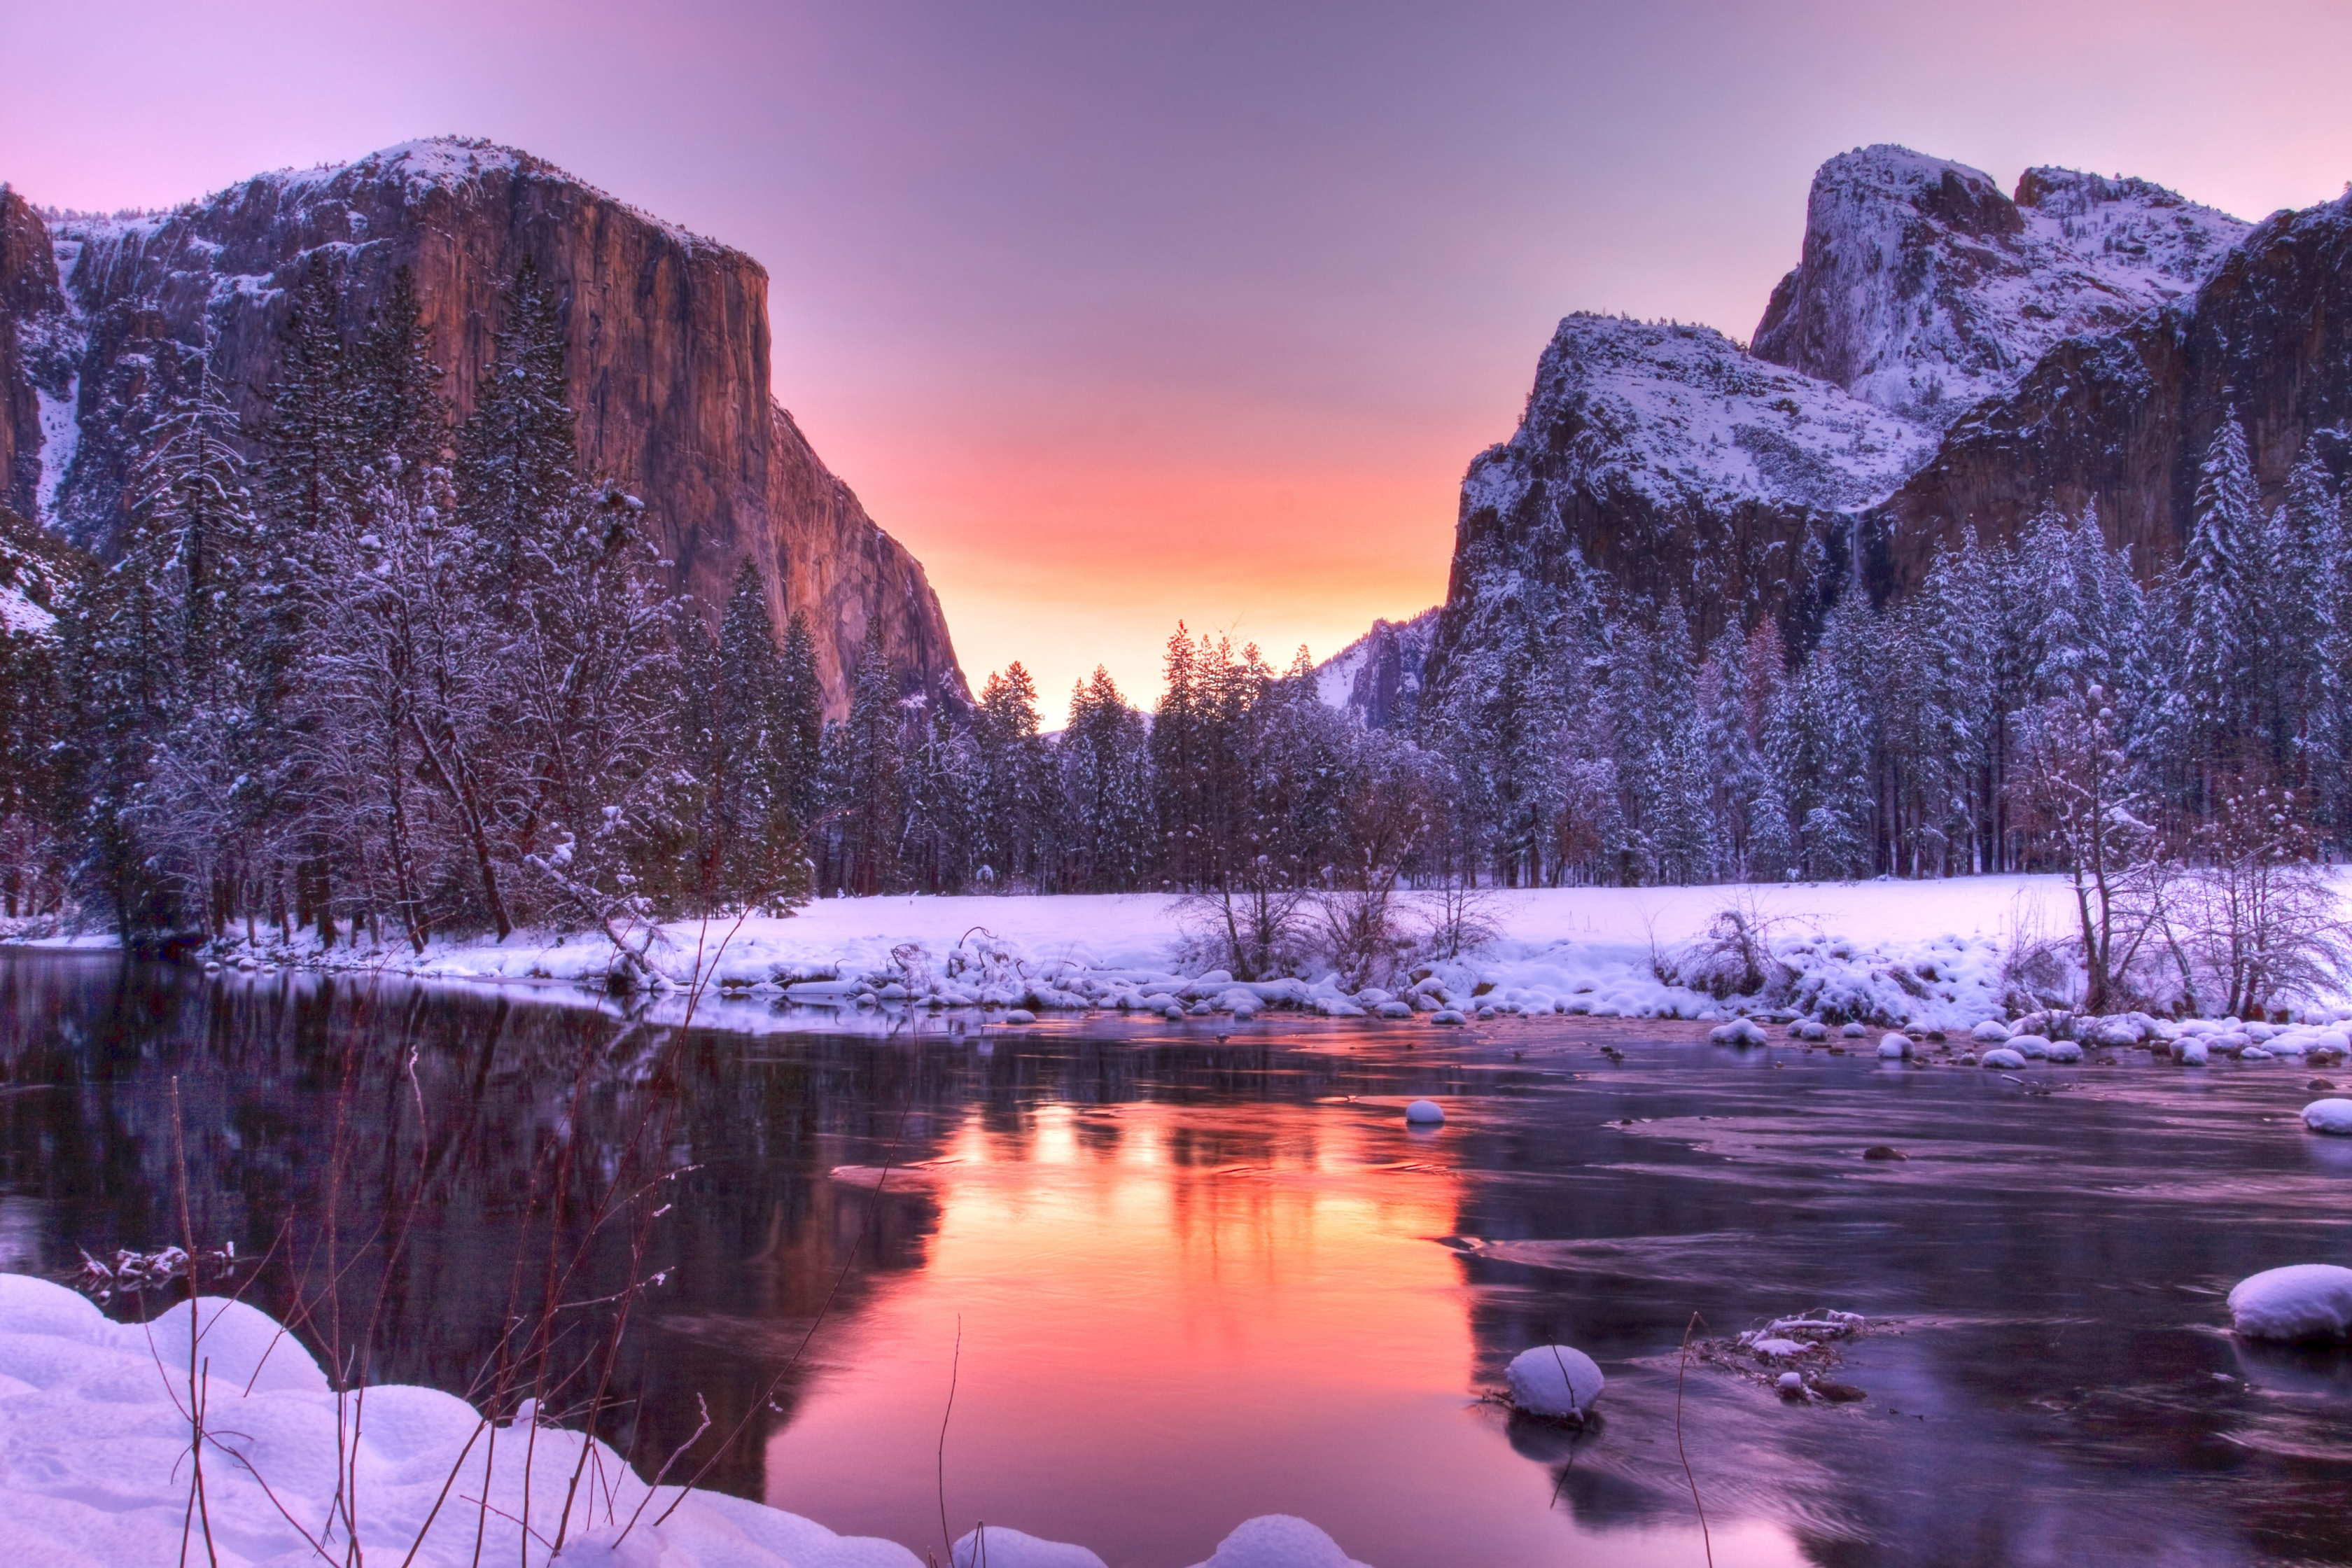 Winter comes at Yosemite National Park.